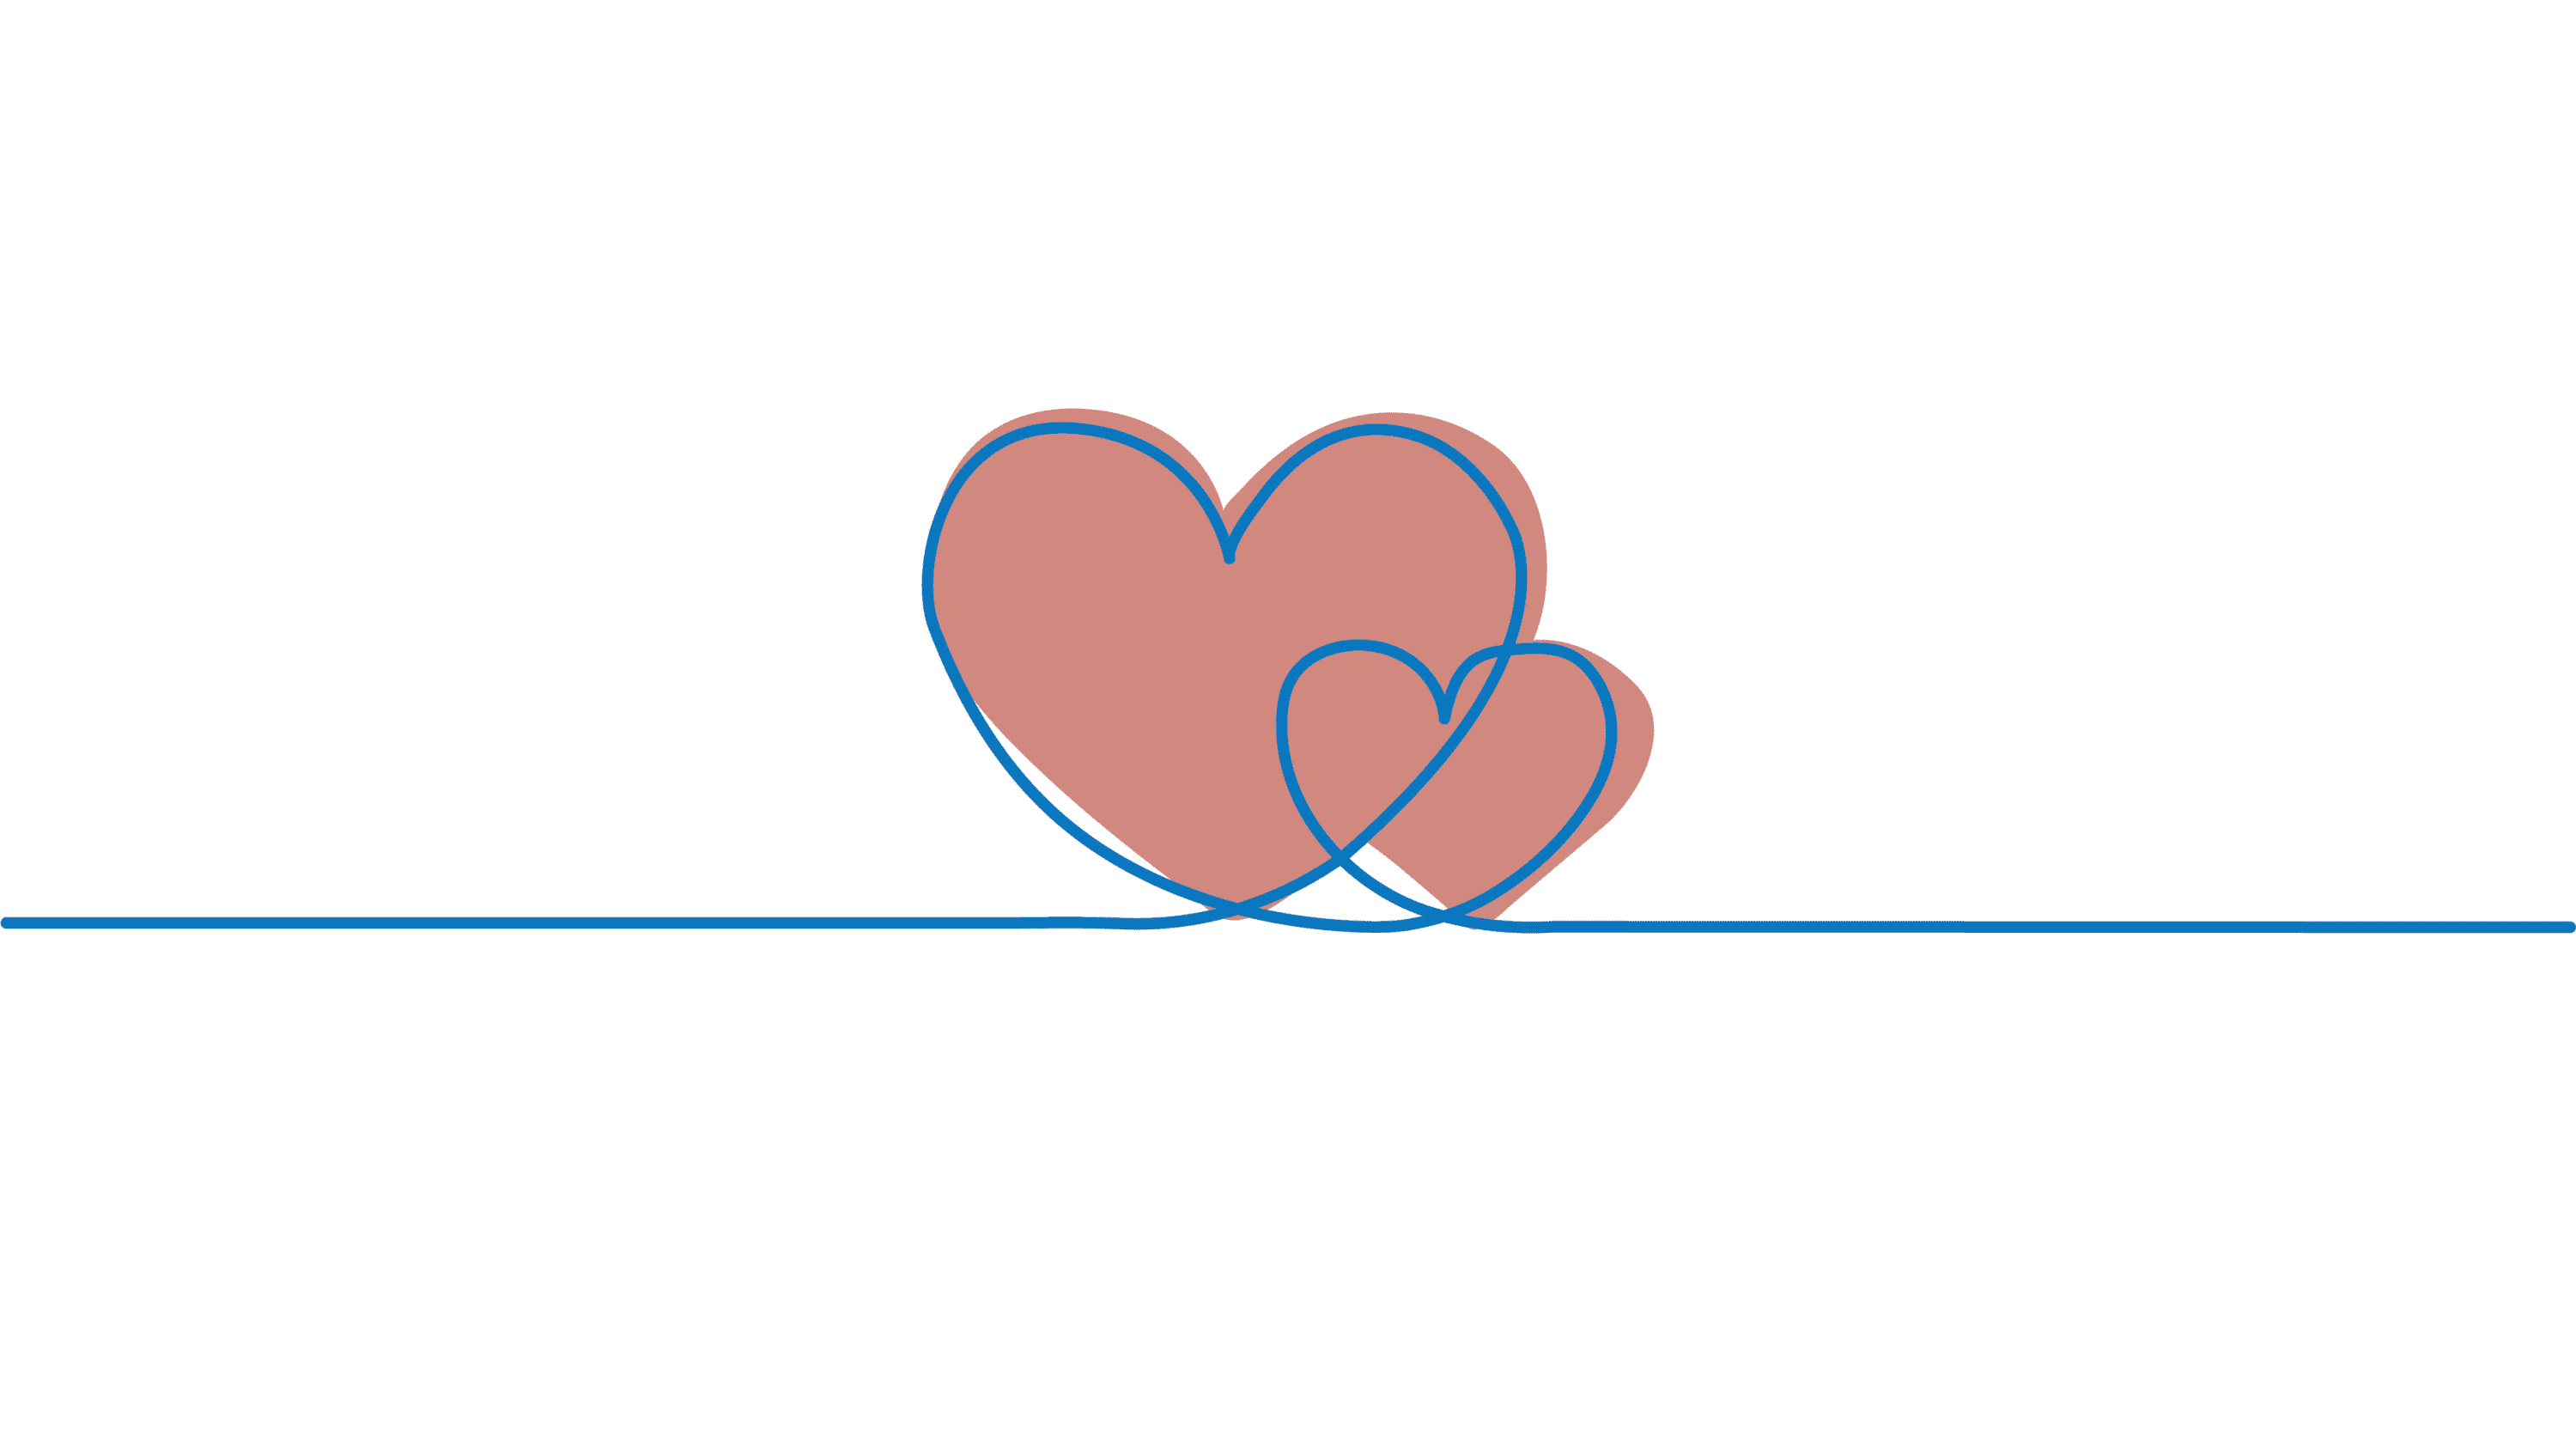 Twin hearts line drawing